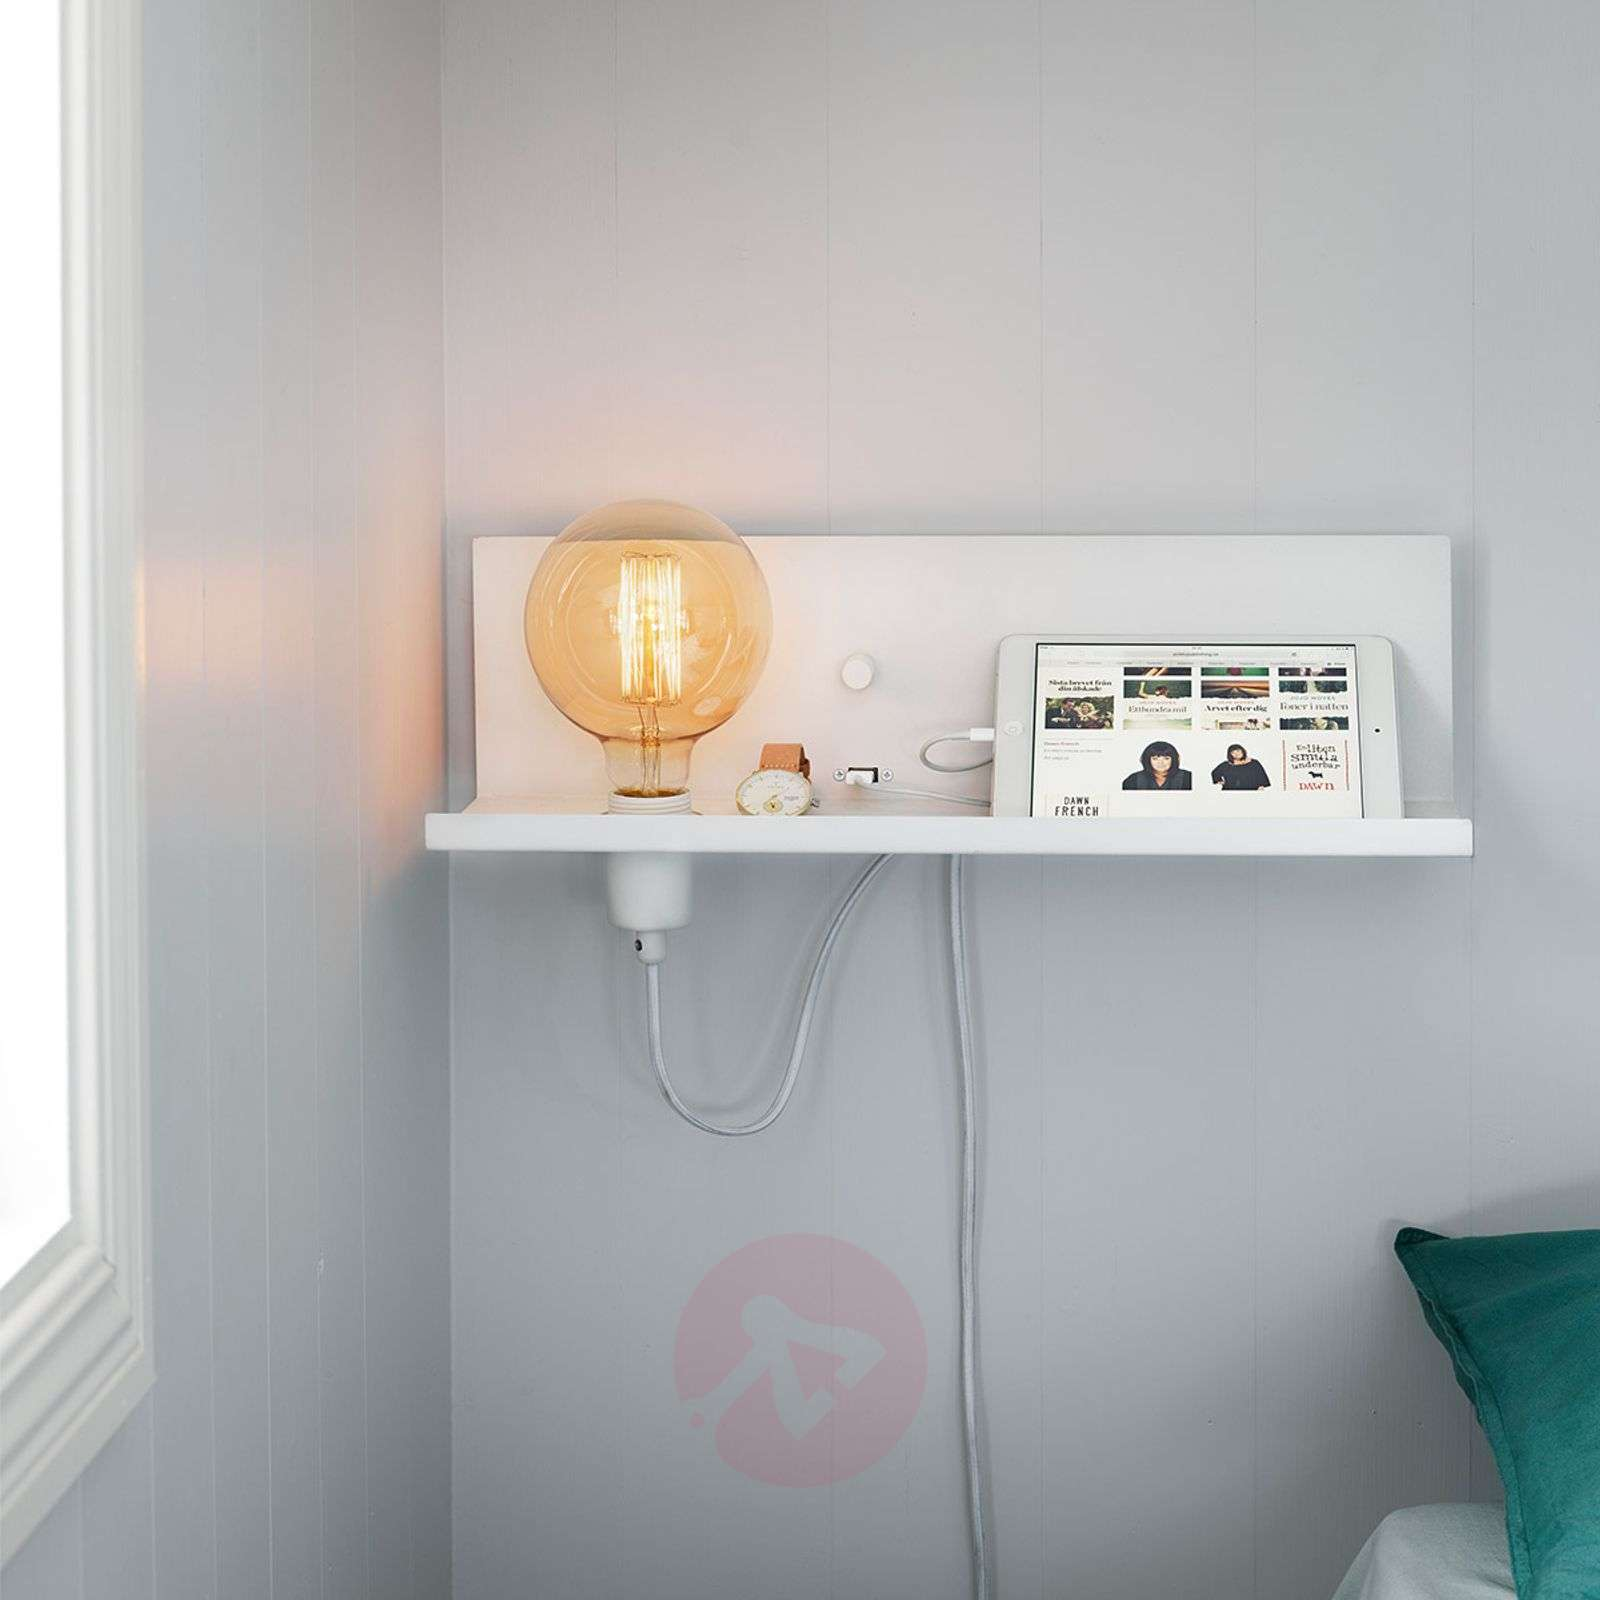 With USB charger Multi white wall light-6506157-01